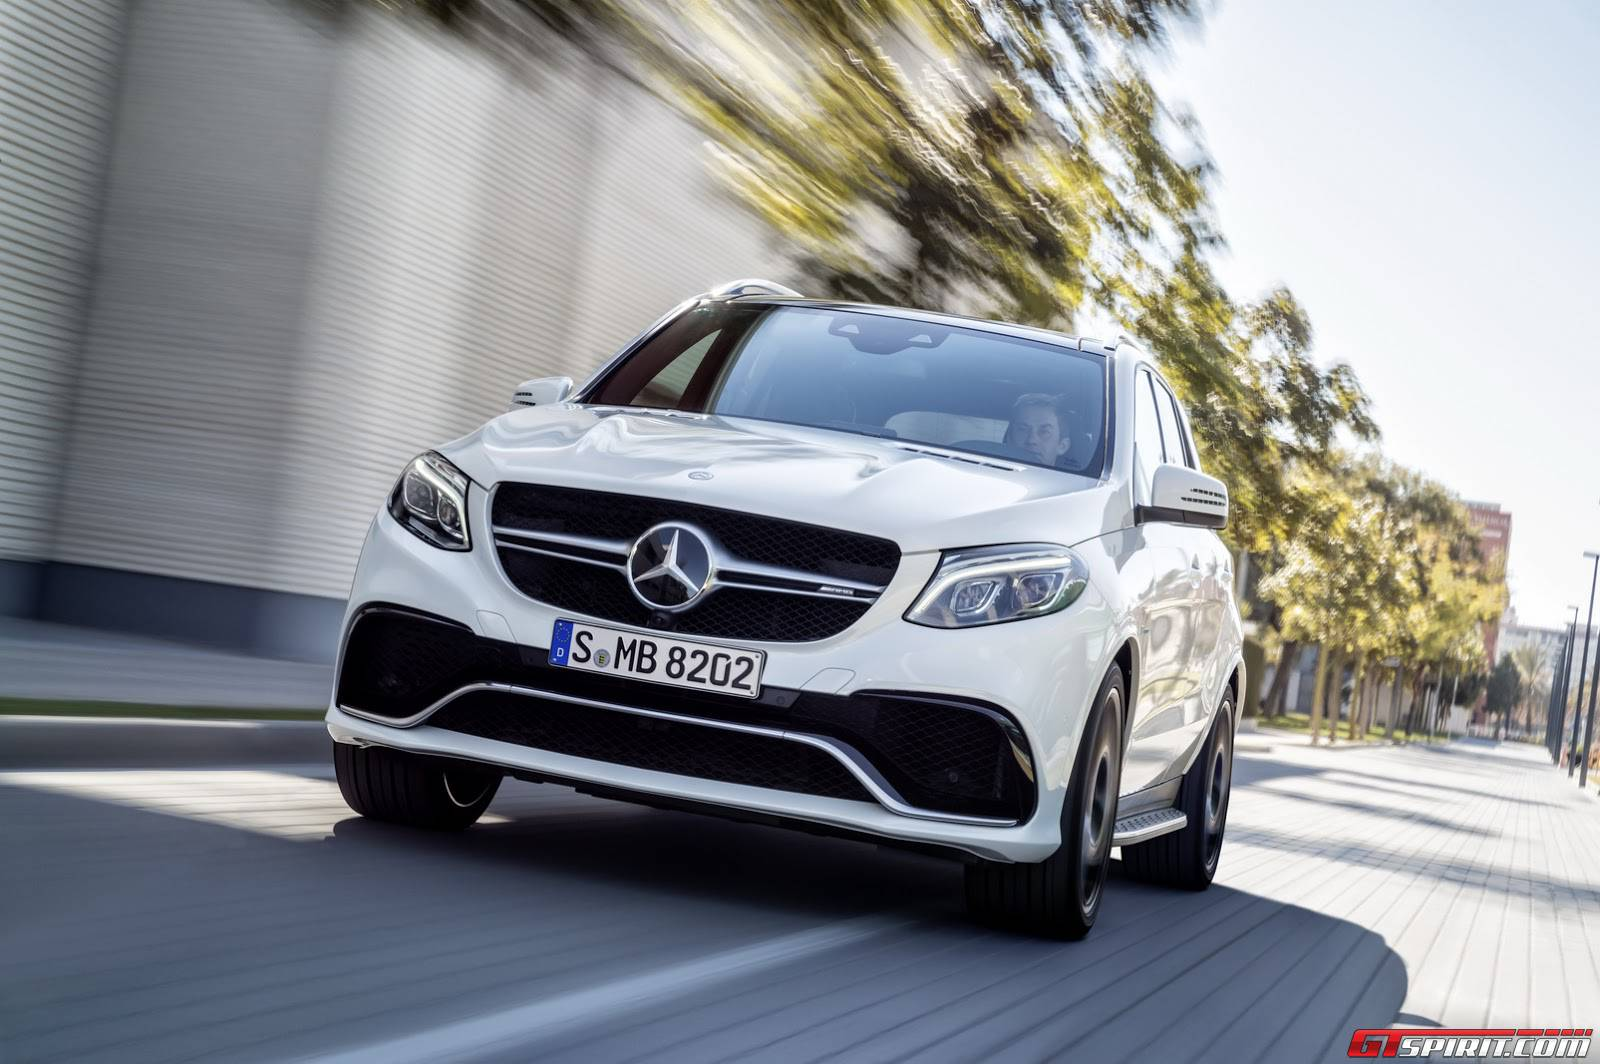 Germany Pricing Revealed for Mercedes-Benz GLE - GTspirit